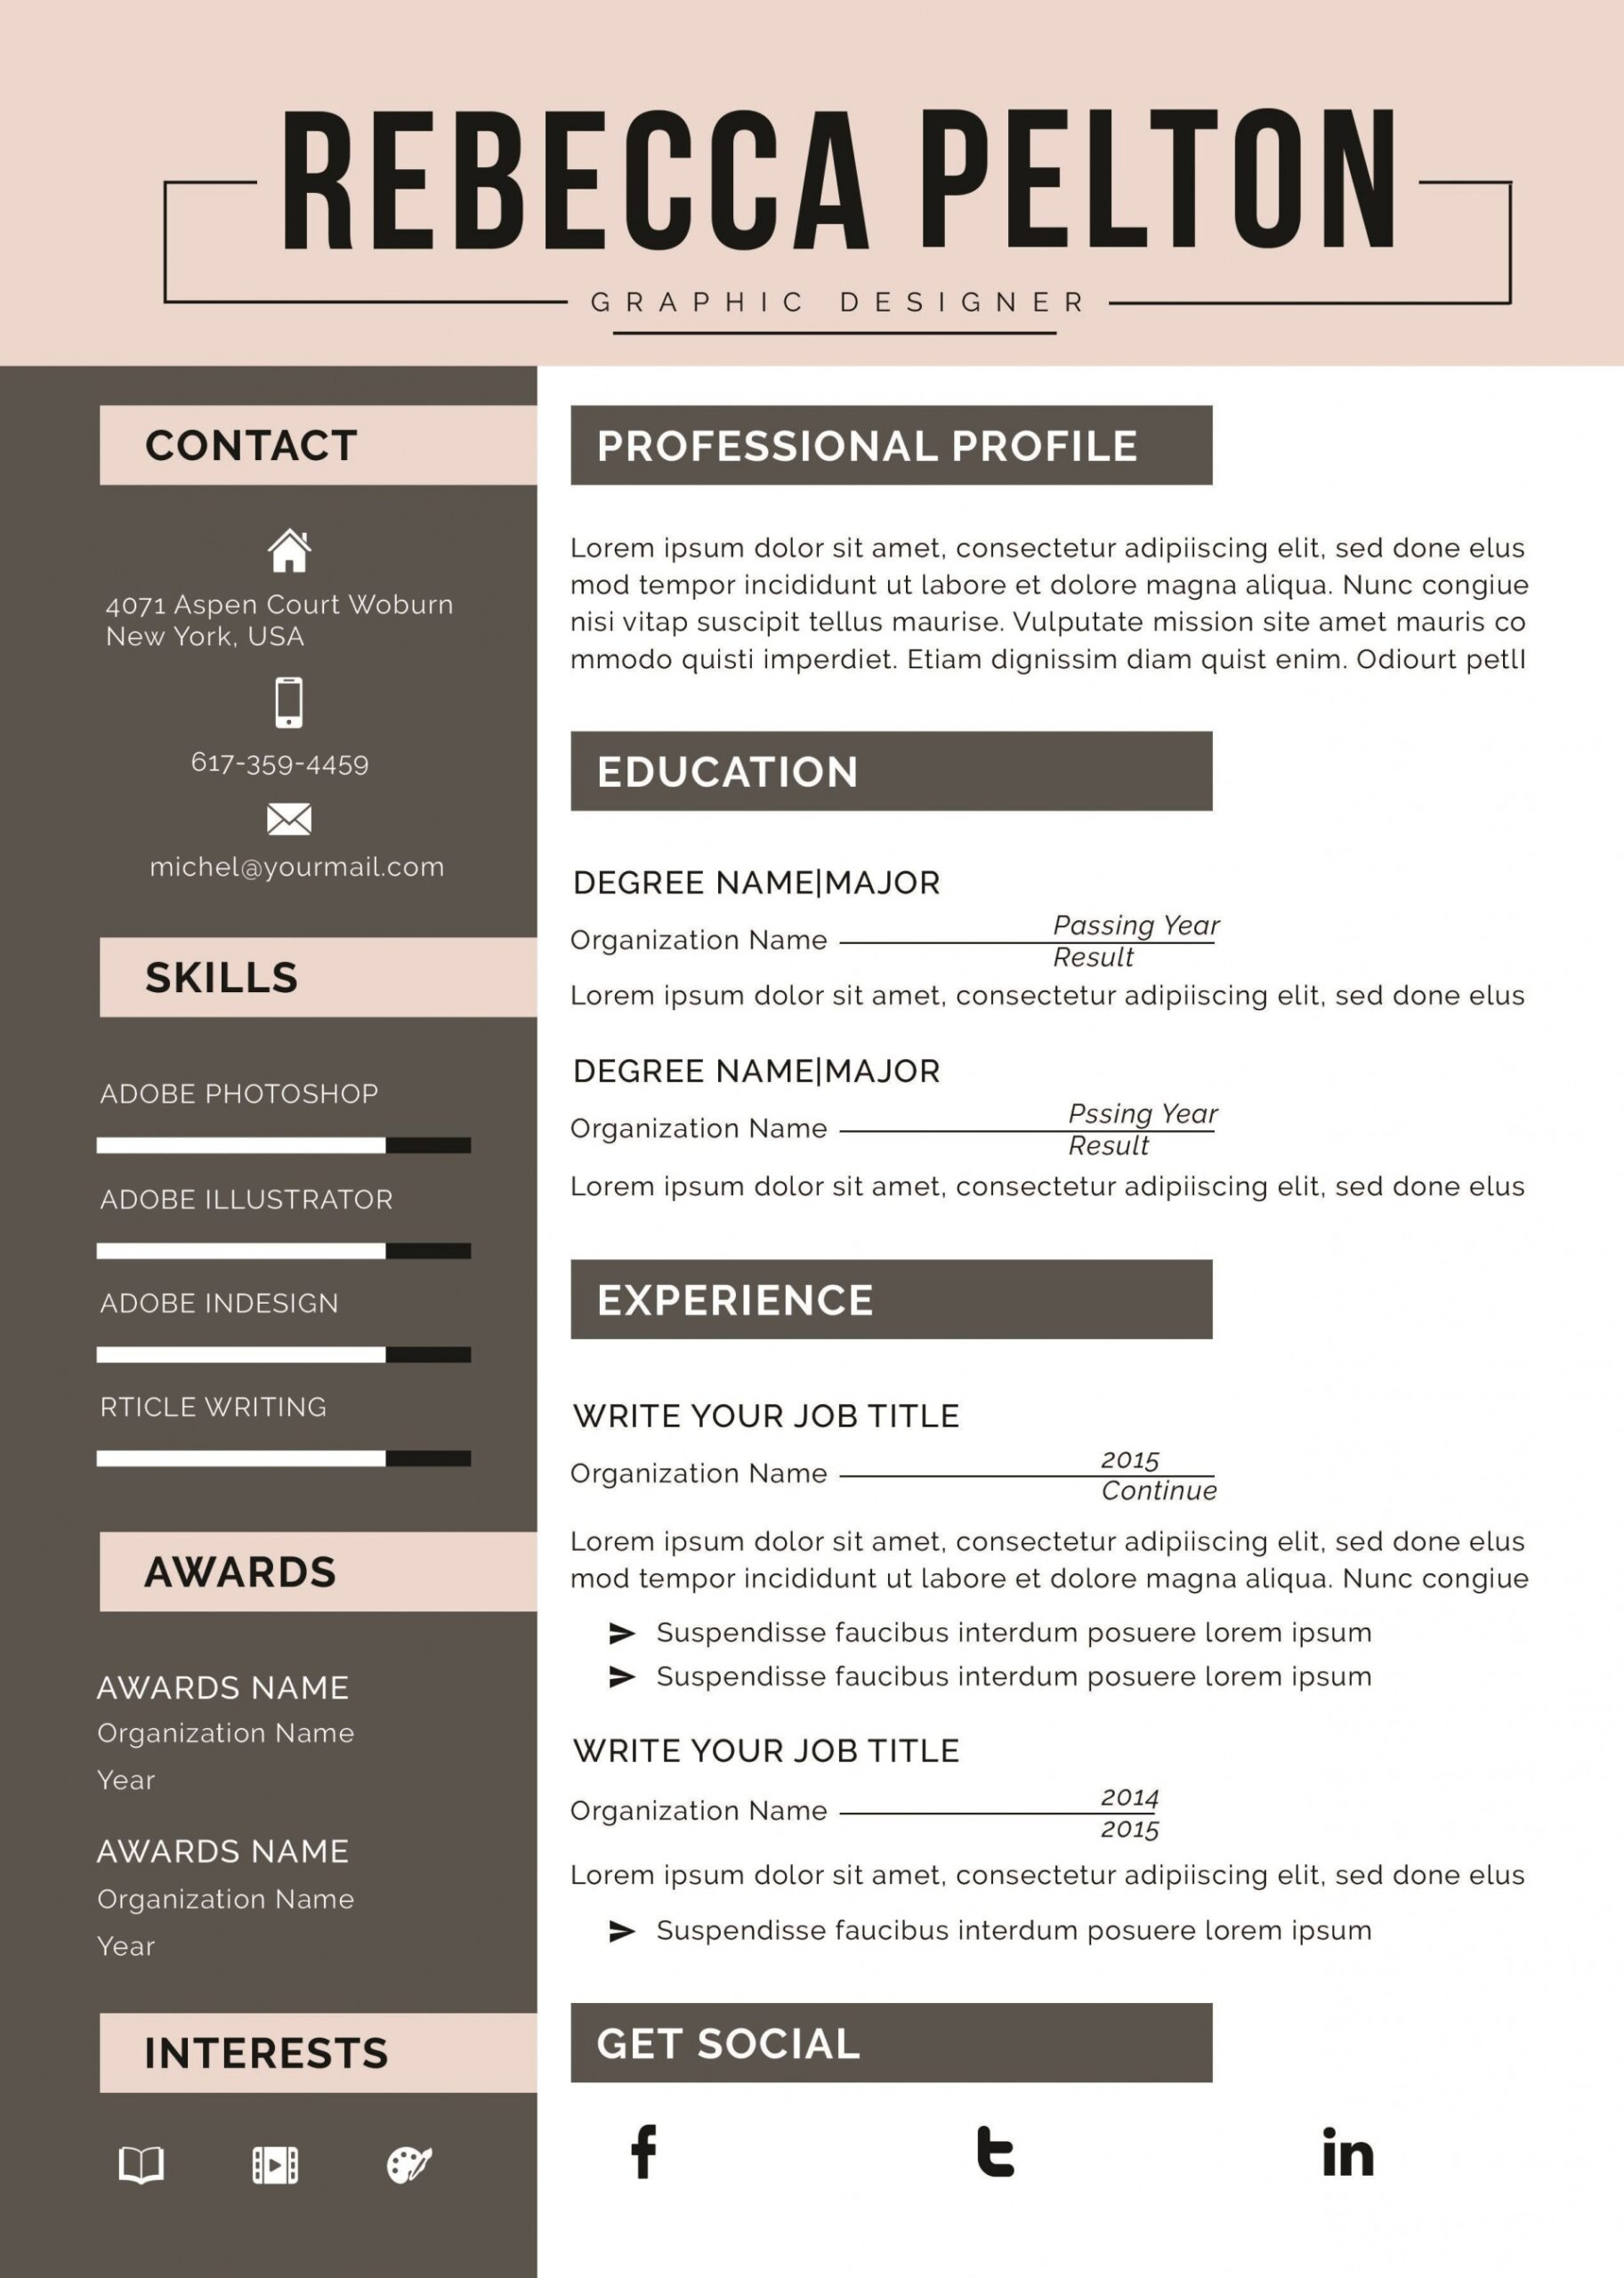 free functional resume templates addictionary adobe core shocking ideas objective Resume Adobe Core Functional Resume